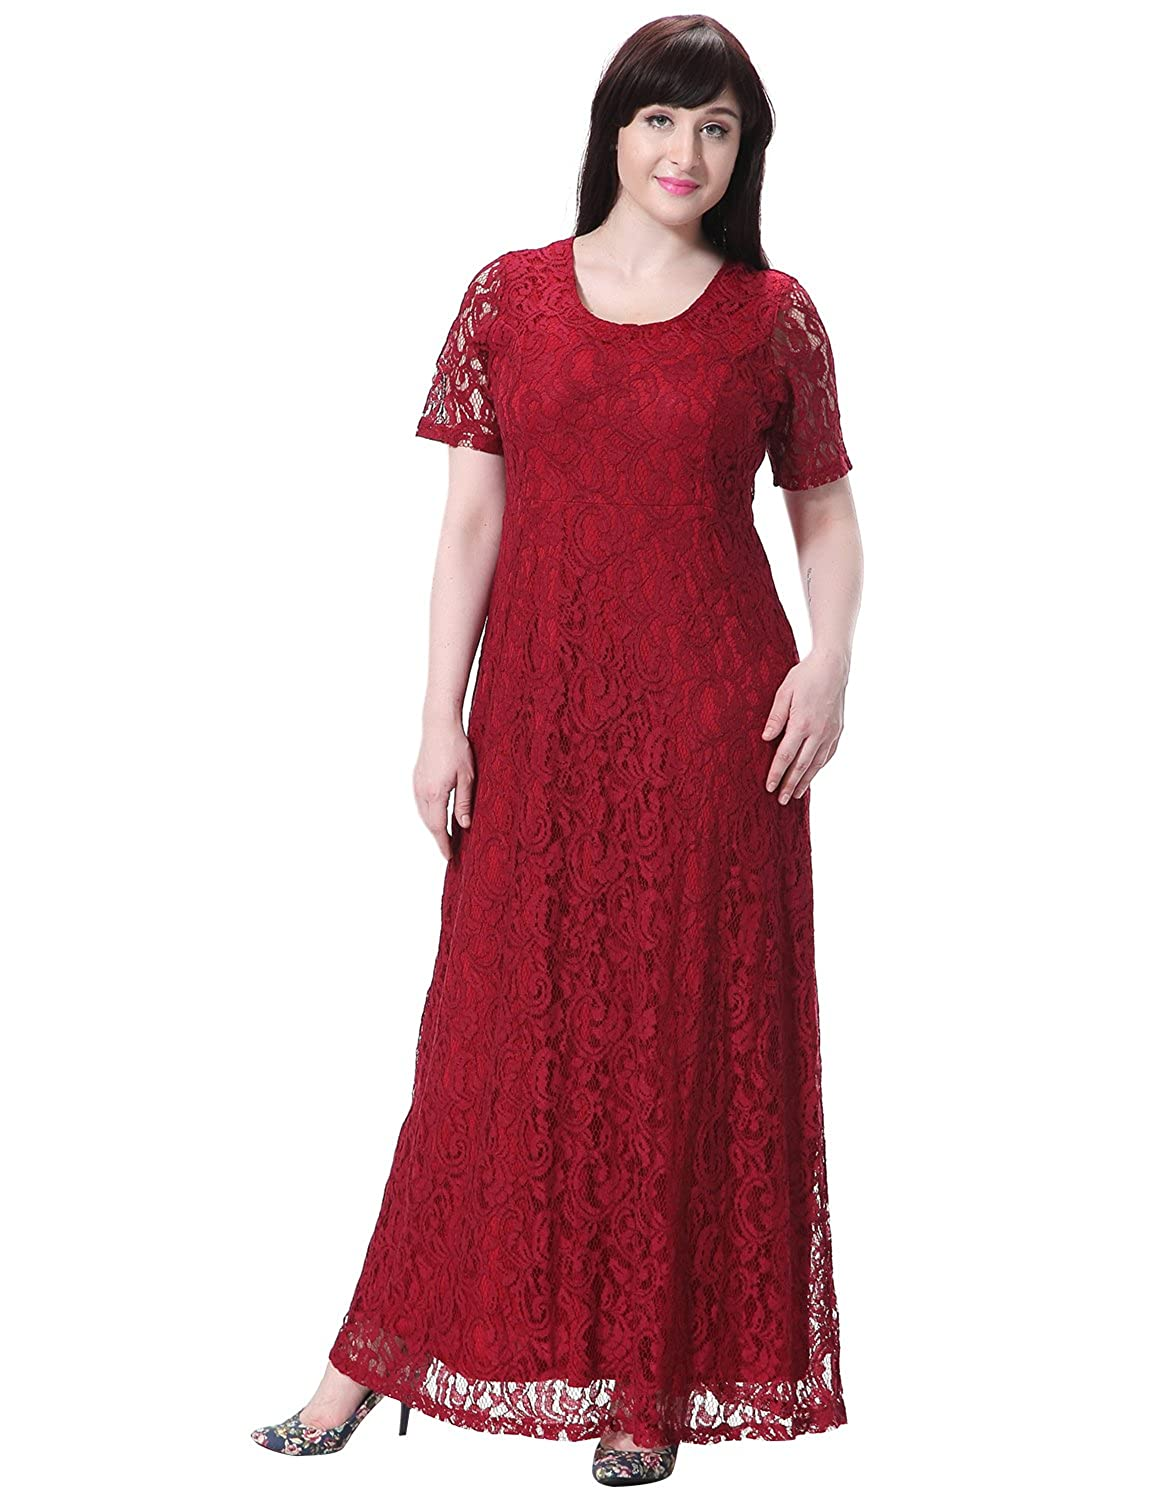 Sue&Joe Women's Plus Size Dress Short Sleeve Full Floral Lace Maxi Evening Gowns